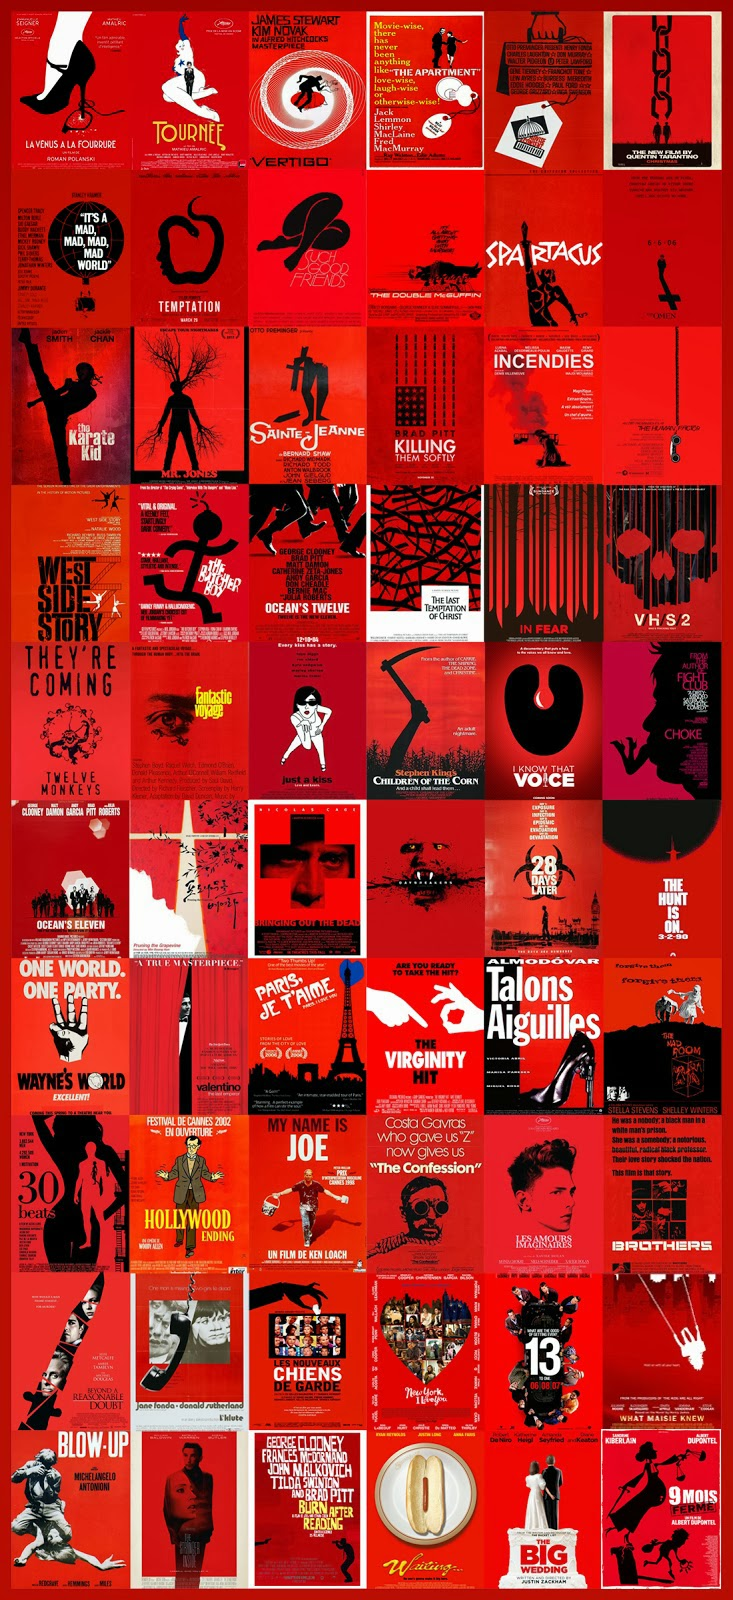 christophe-courtois-movie-posters-red